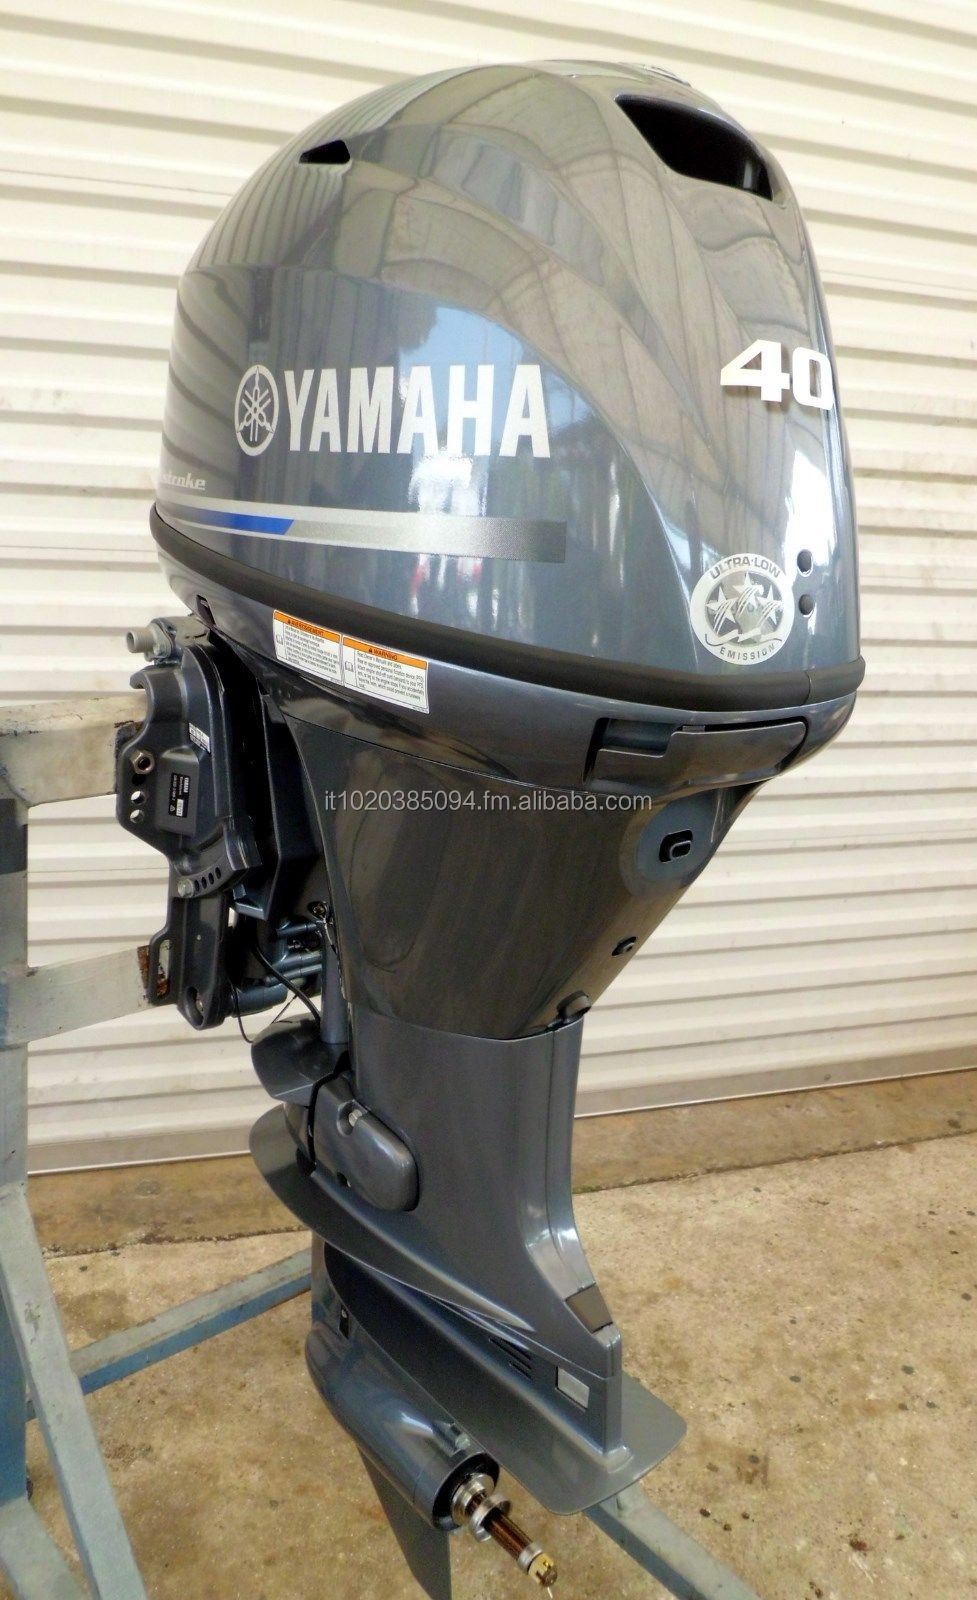 USED Y-A-M-A-H-A 40 HP 4 STROKE OUT BOARD MOTOR